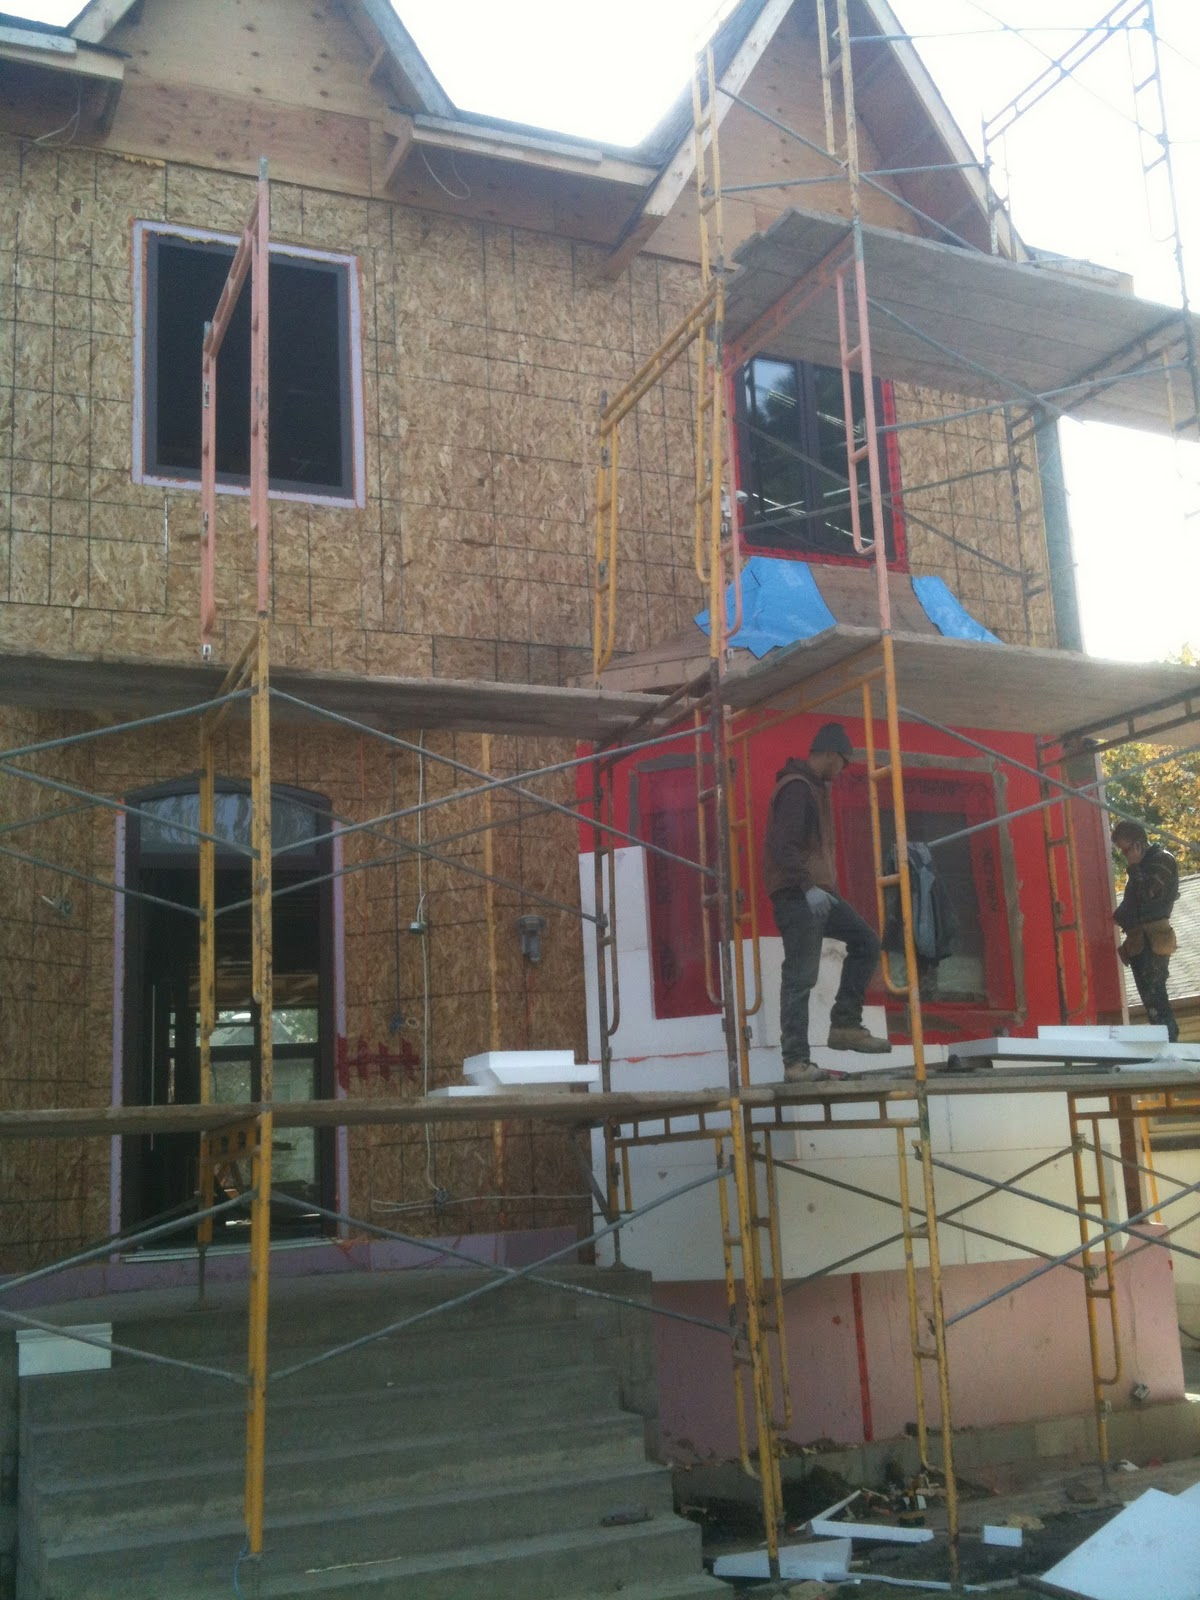 The Reno Coach Passive House Project in Toronto: A bussy day